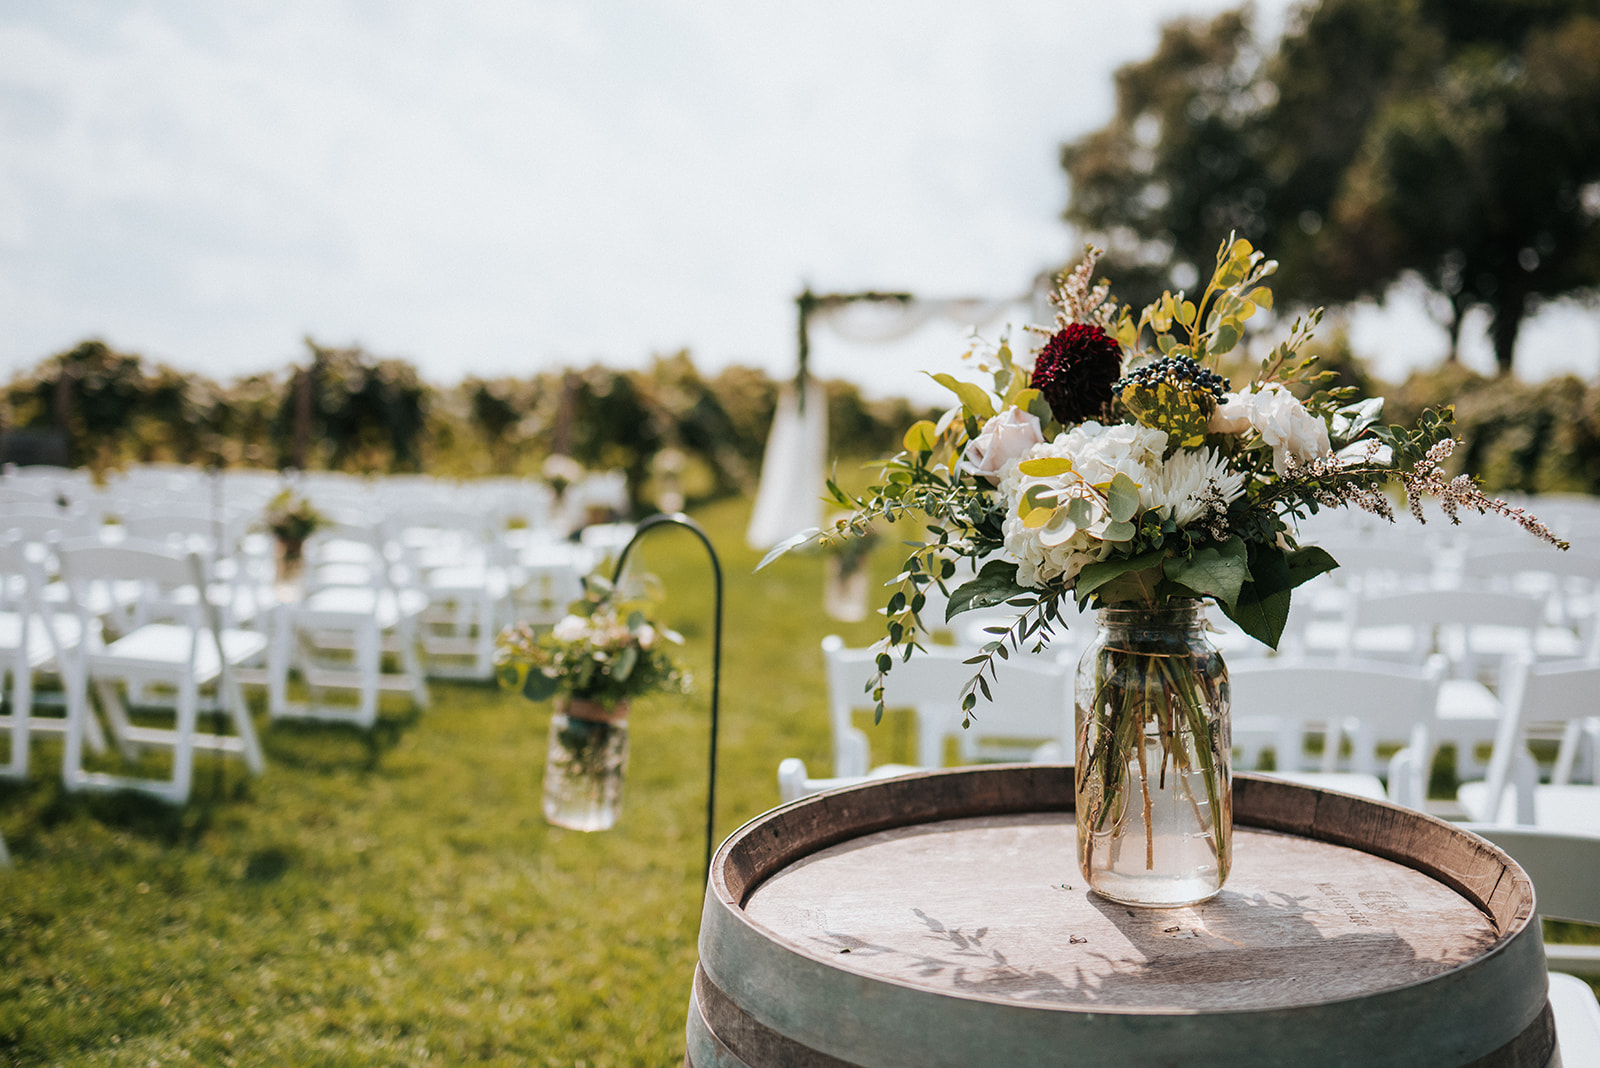 overthevineswisconsinwedding_0466.jpg